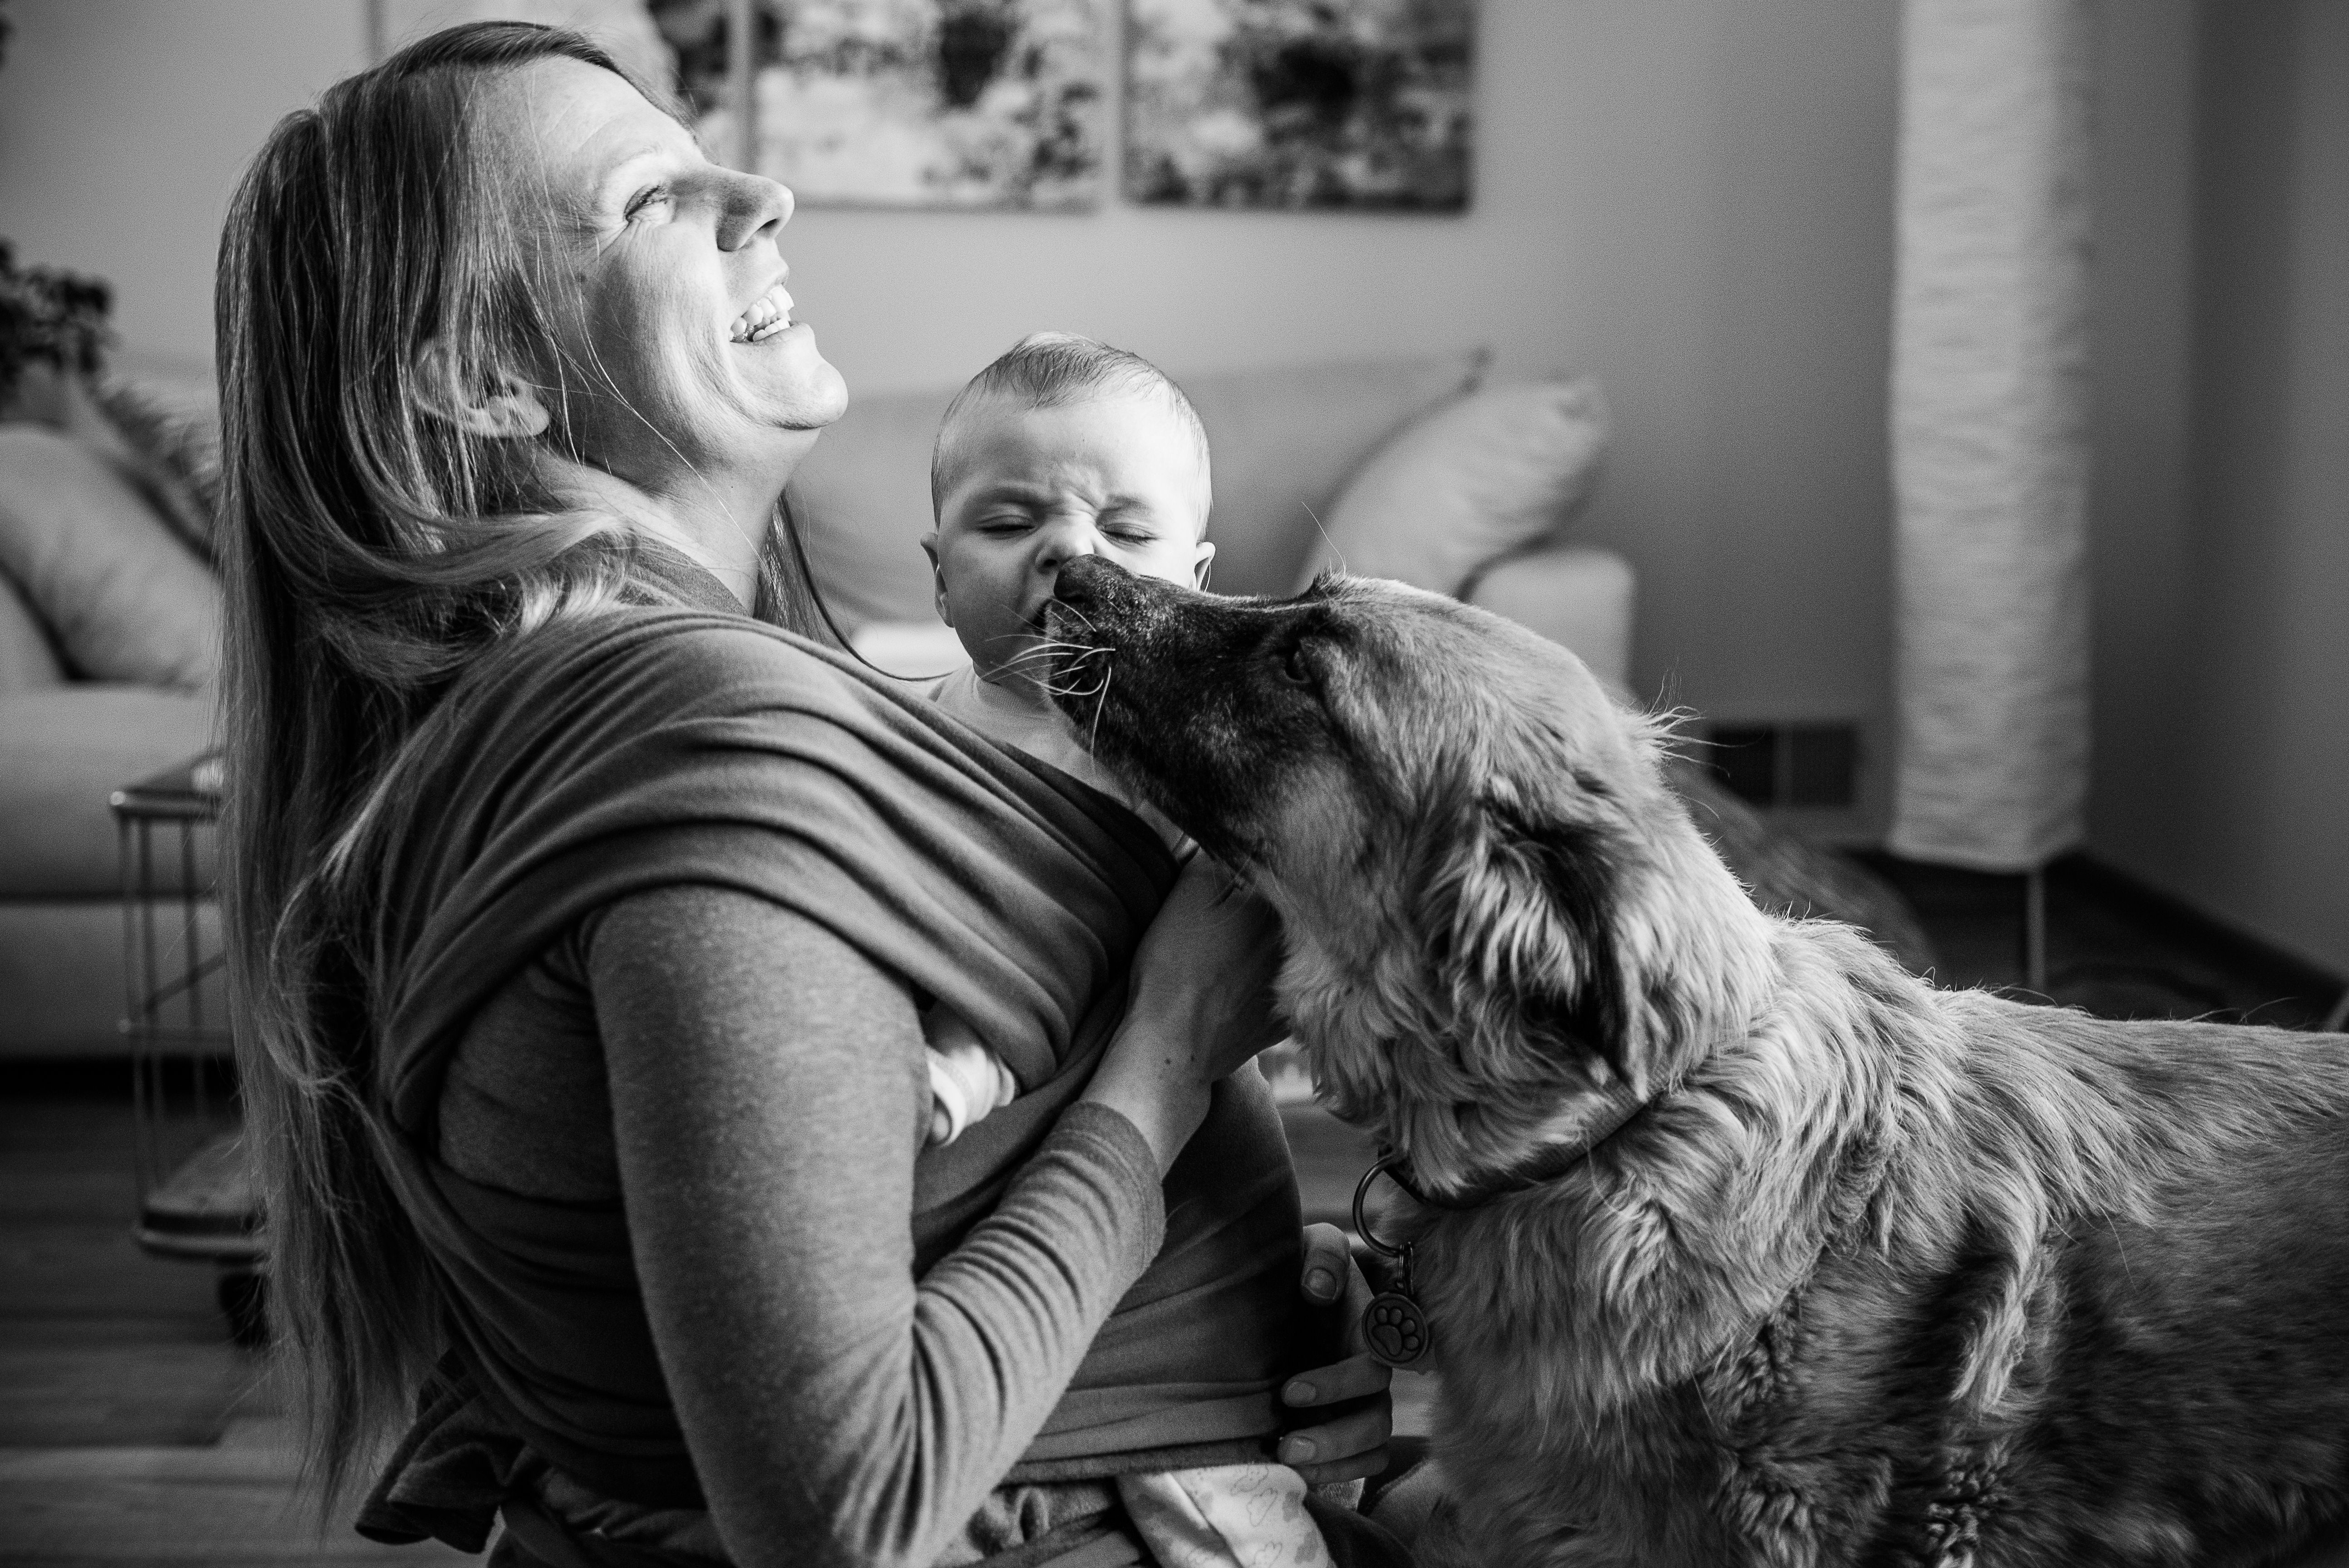 Dog licks baby and mom laughs